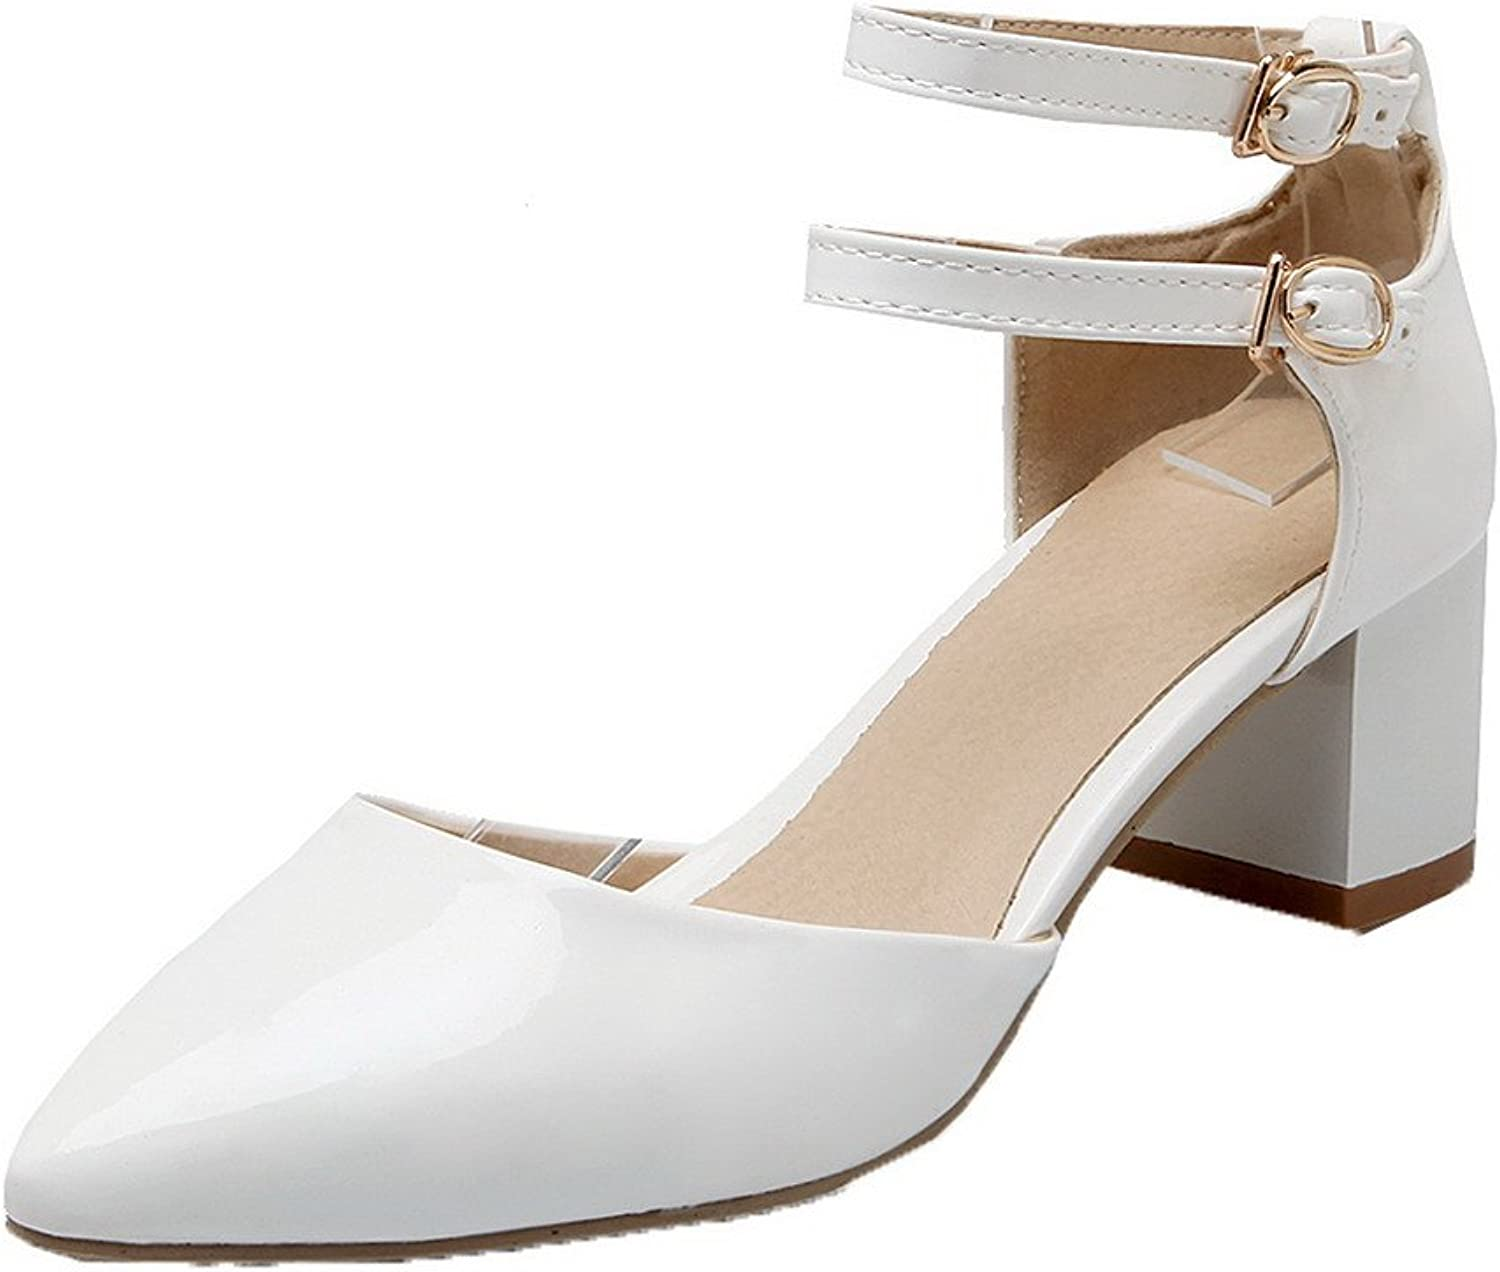 WeiPoot Women's Patent Leather Kitten-Heels Closed-Toe Solid Buckle Sandals